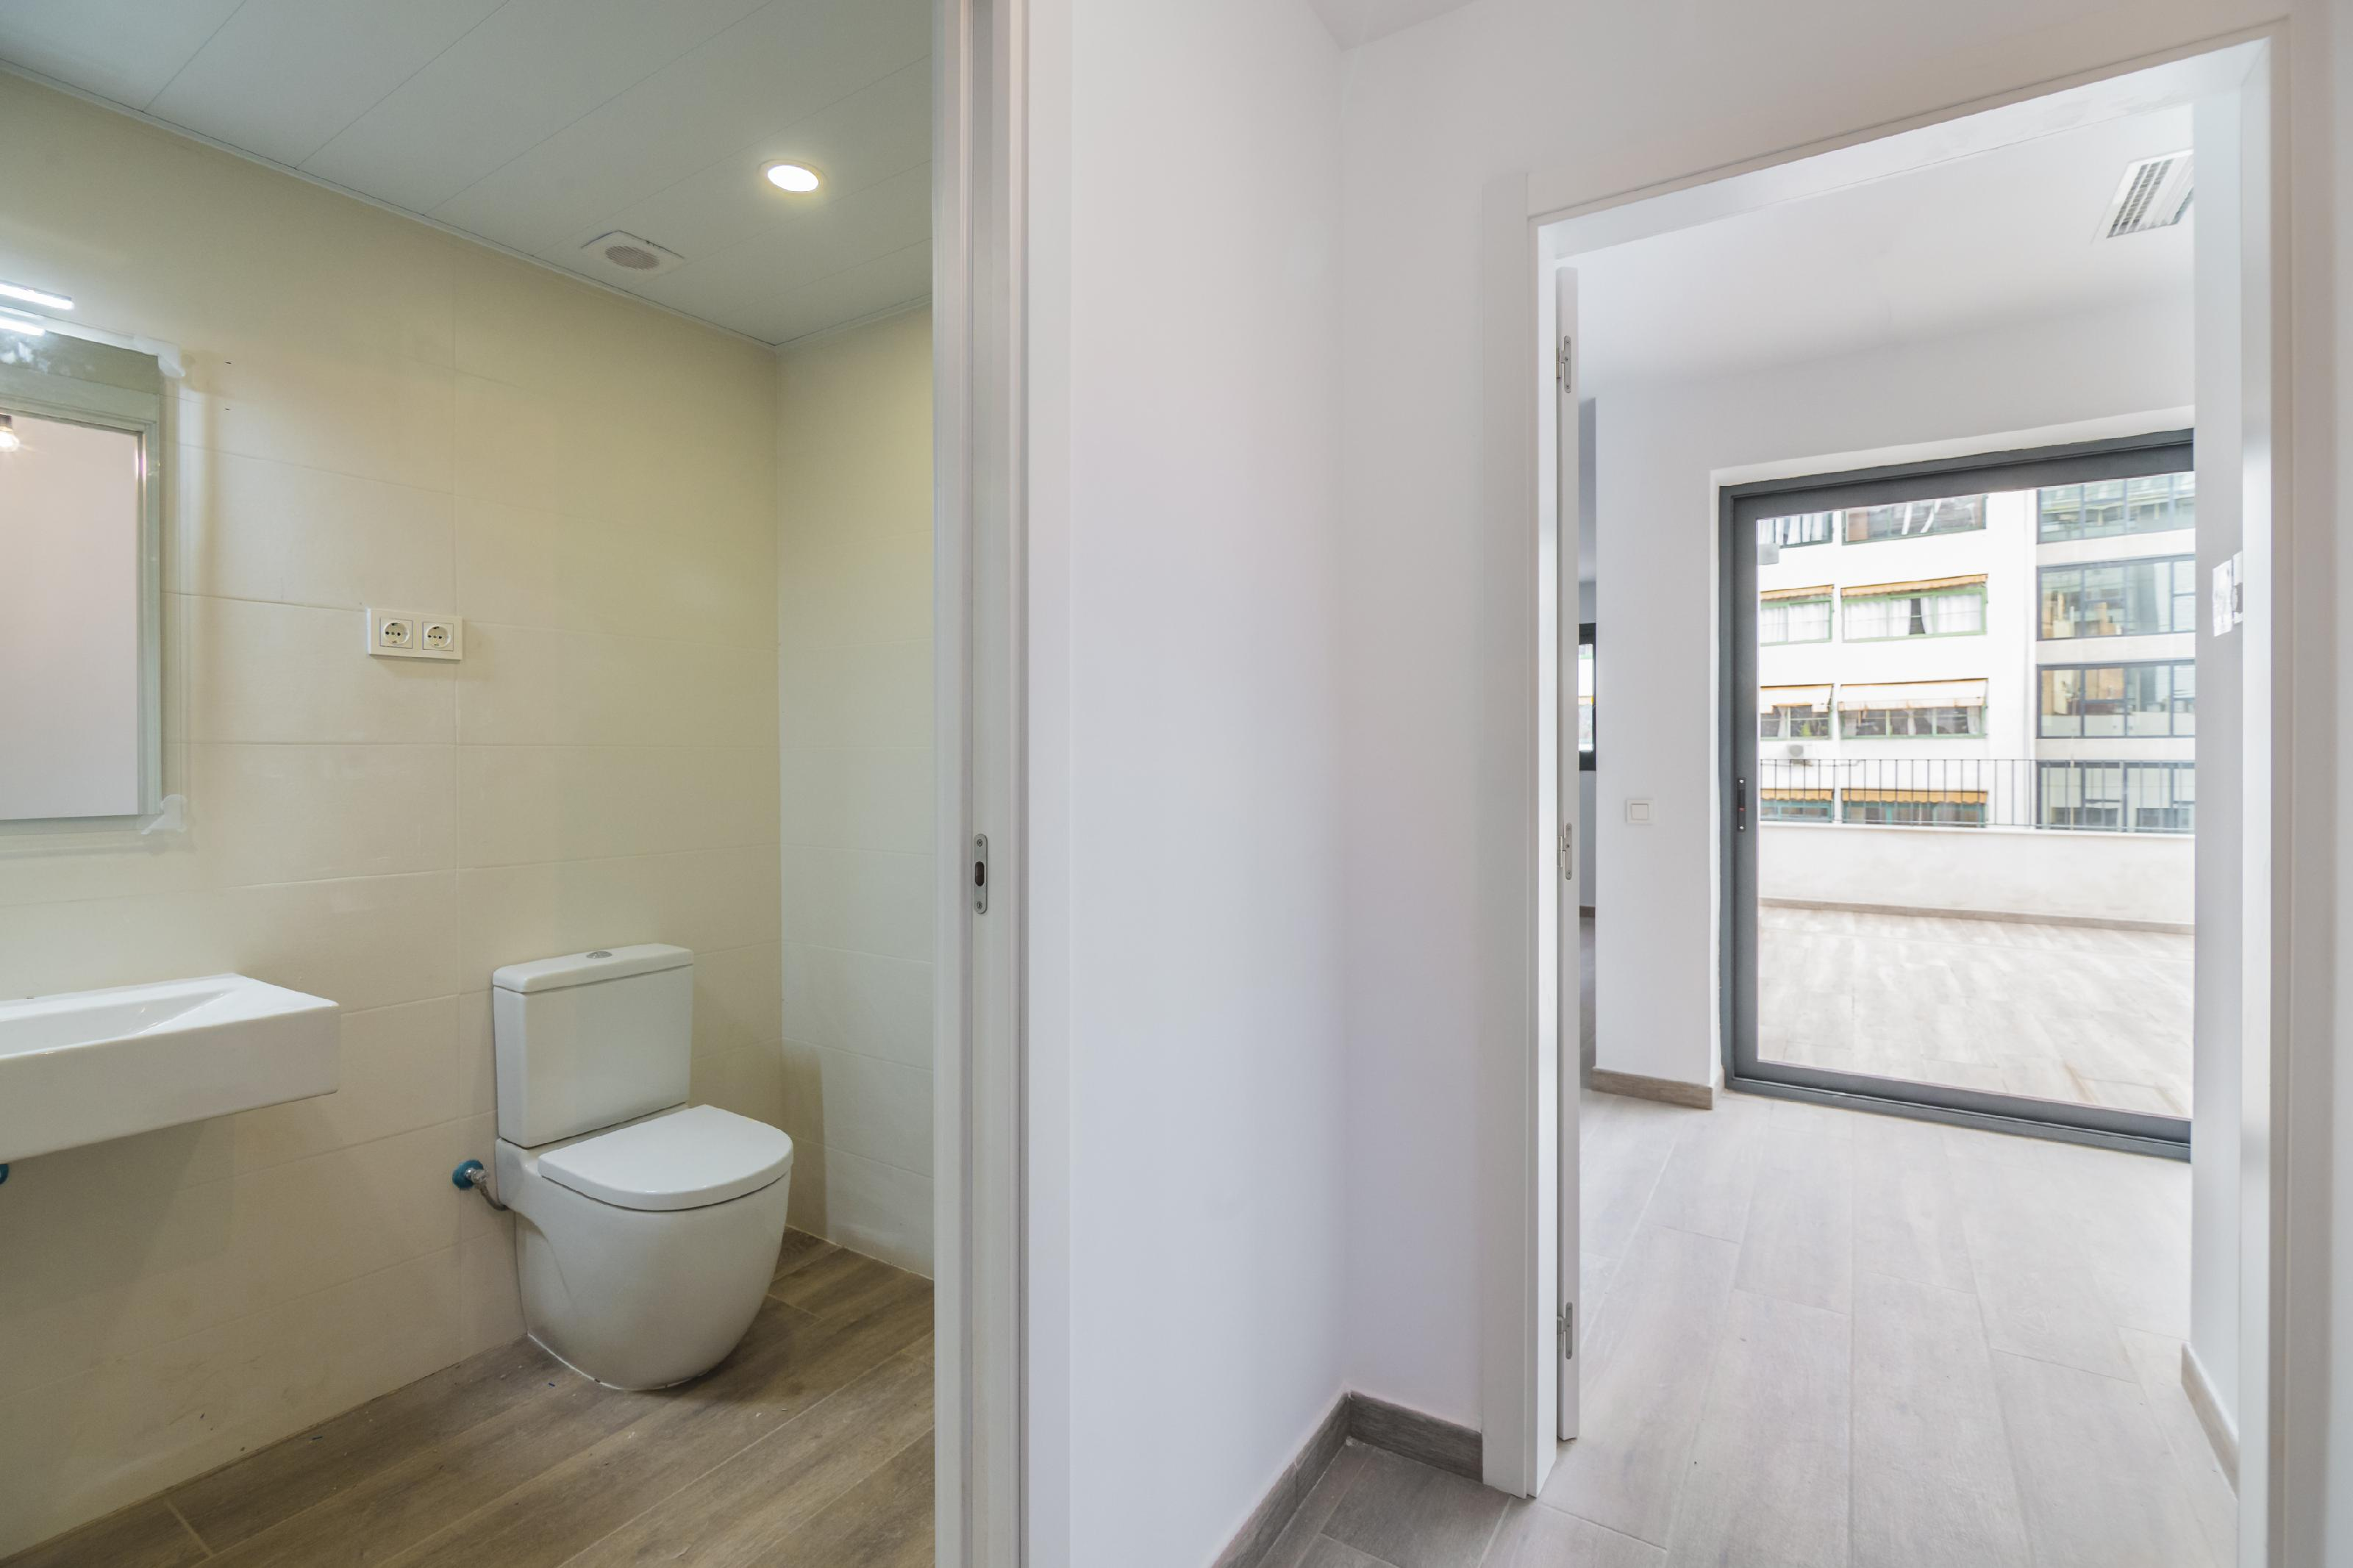 220653 Penthouse for sale in Sarrià-Sant Gervasi, Sant Gervasi-Galvany 12